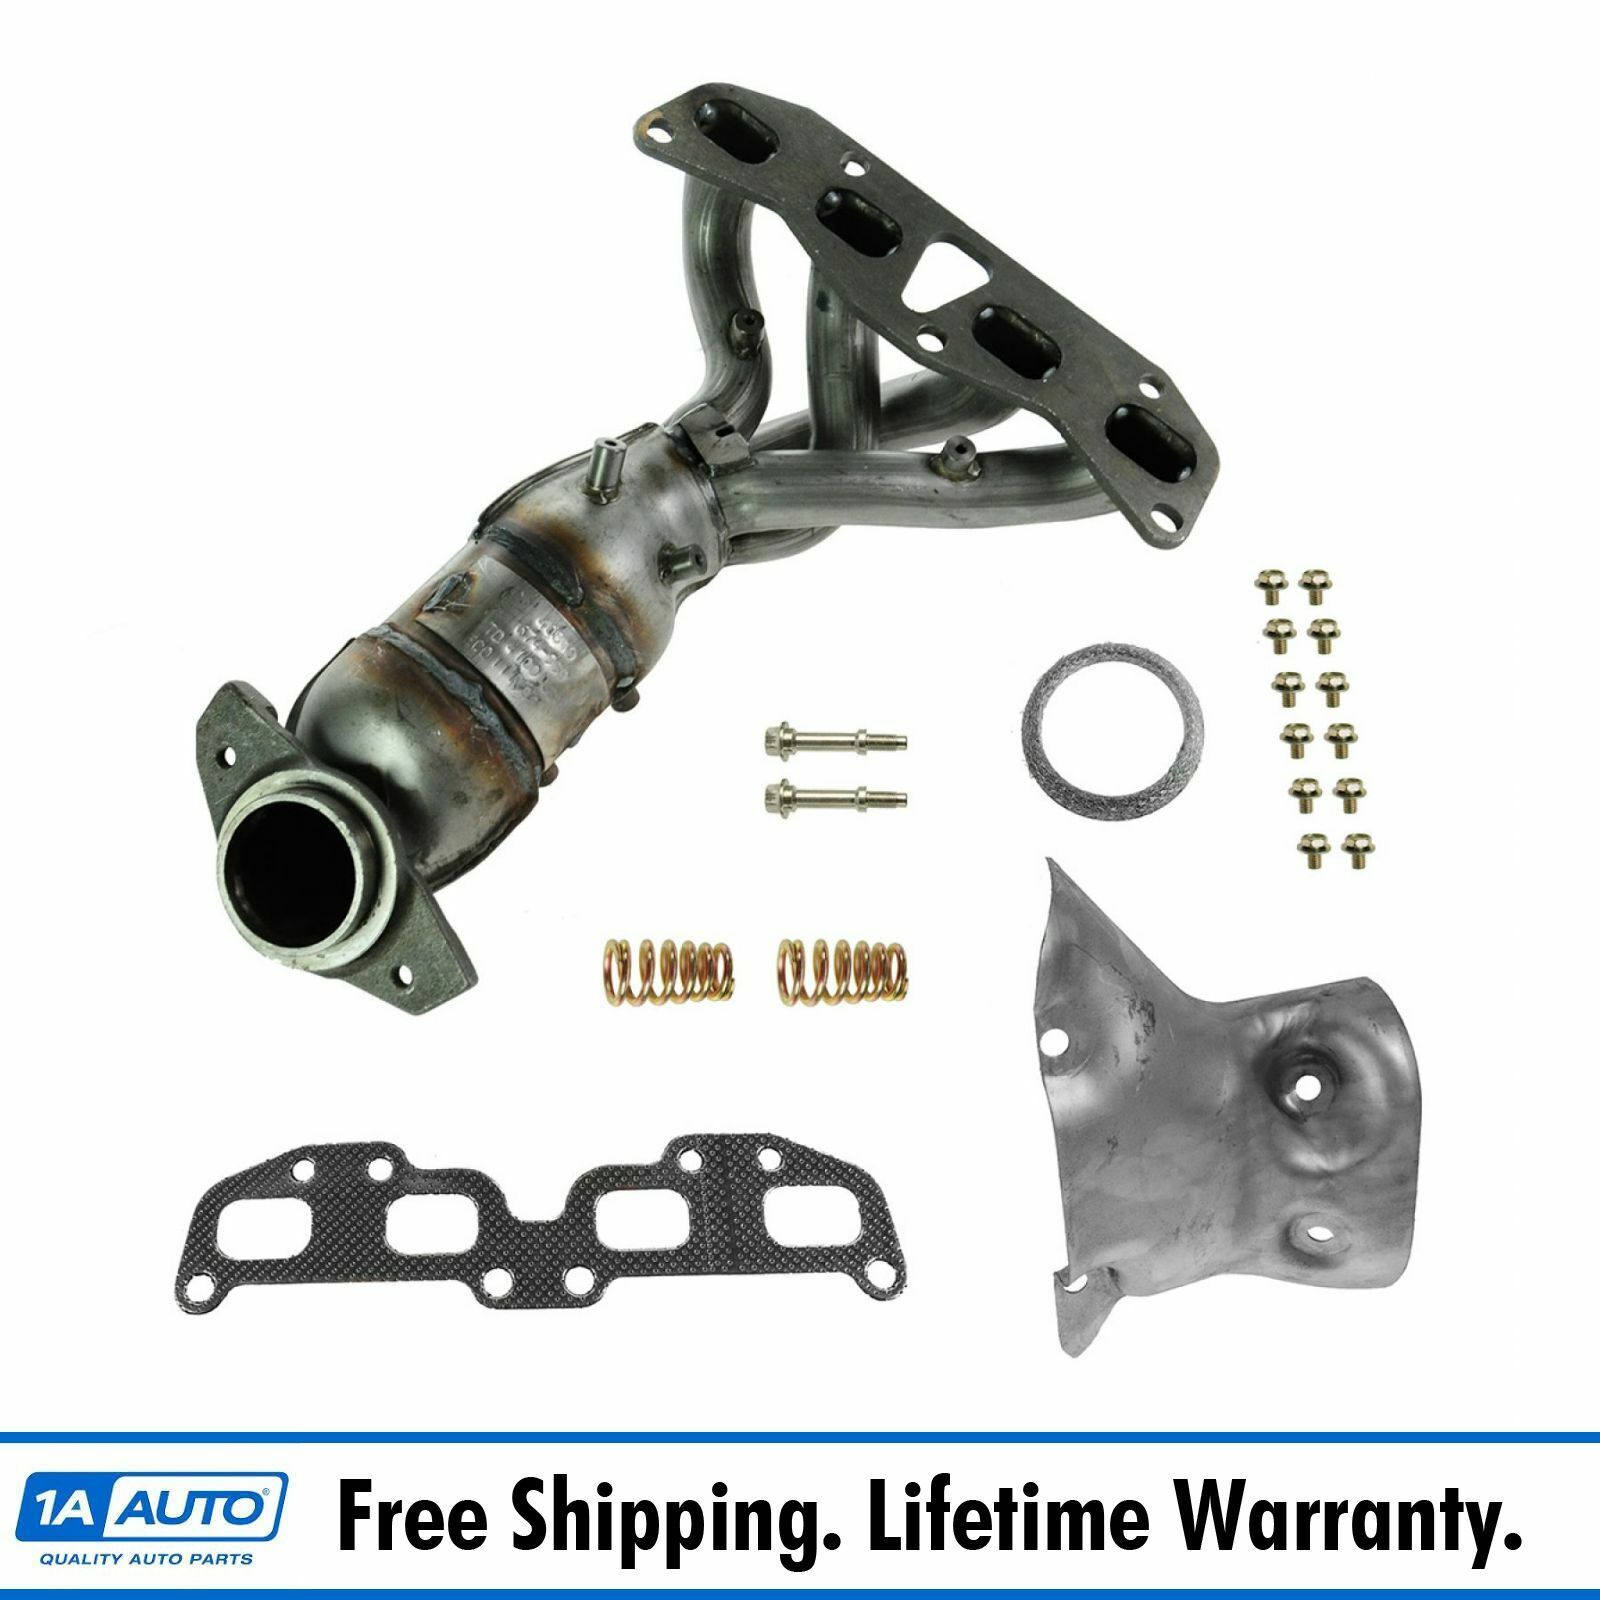 DORMAN 671 959 Exhaust Manifold Catalytic Converter For Nissan Altima  Sentra 2.5 1 Of 2Only 1 Available See More